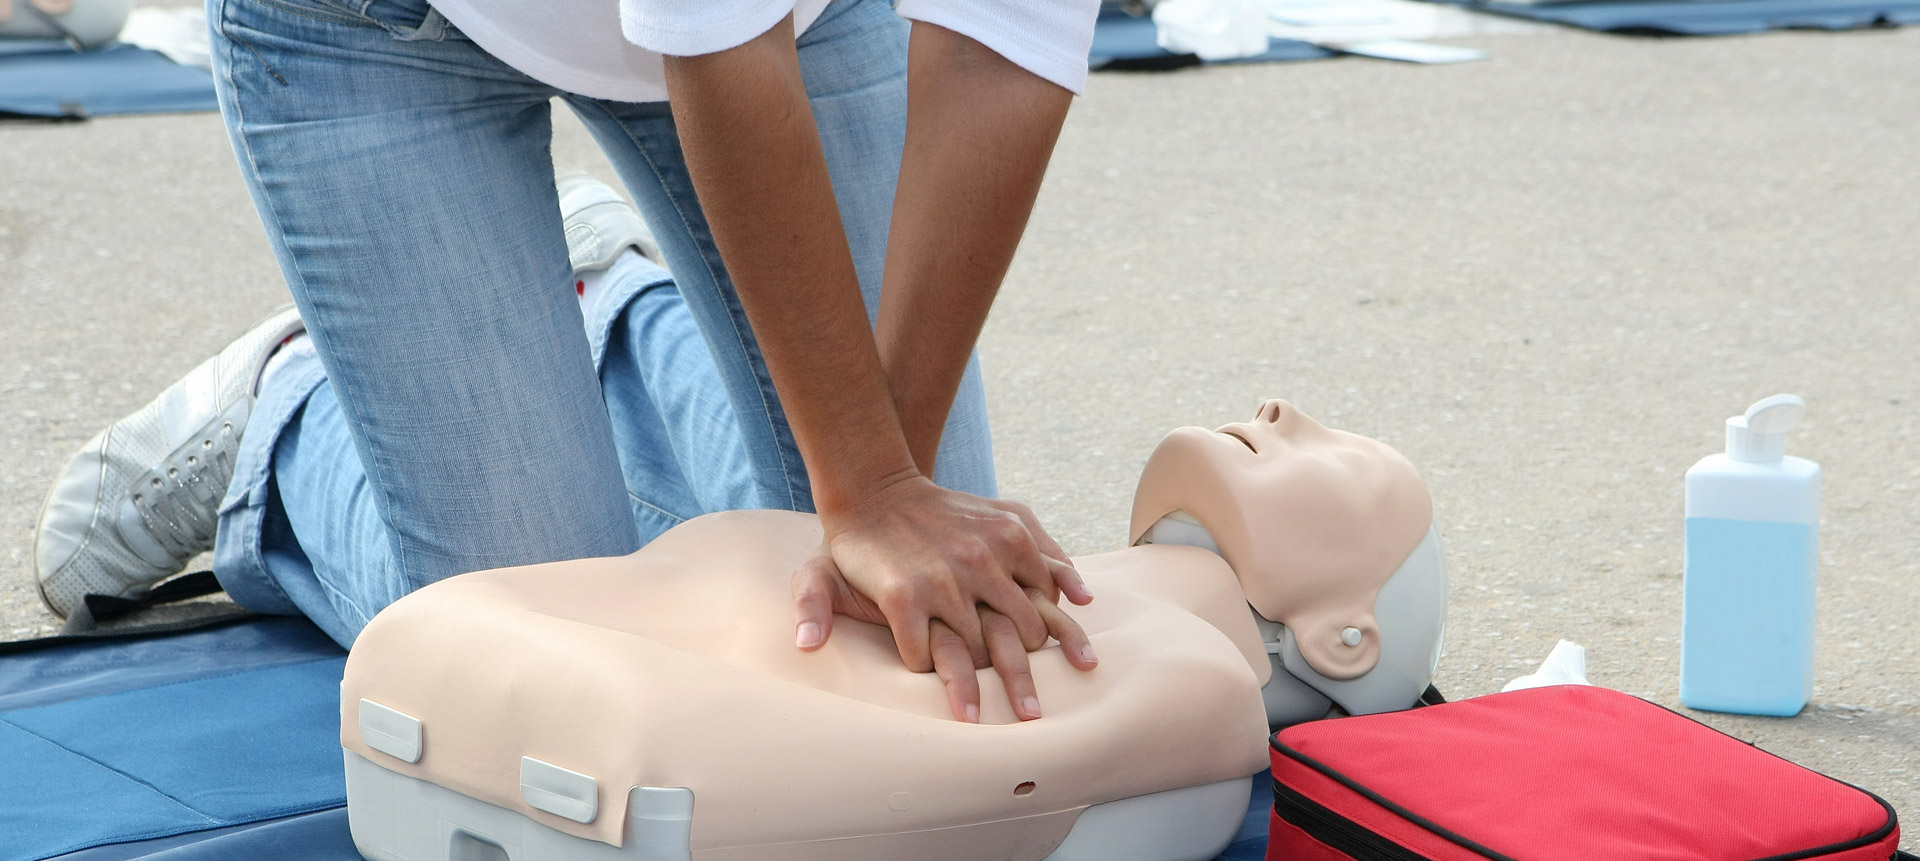 A woman performs chest compressions on a mannequin during an outside CPR training session